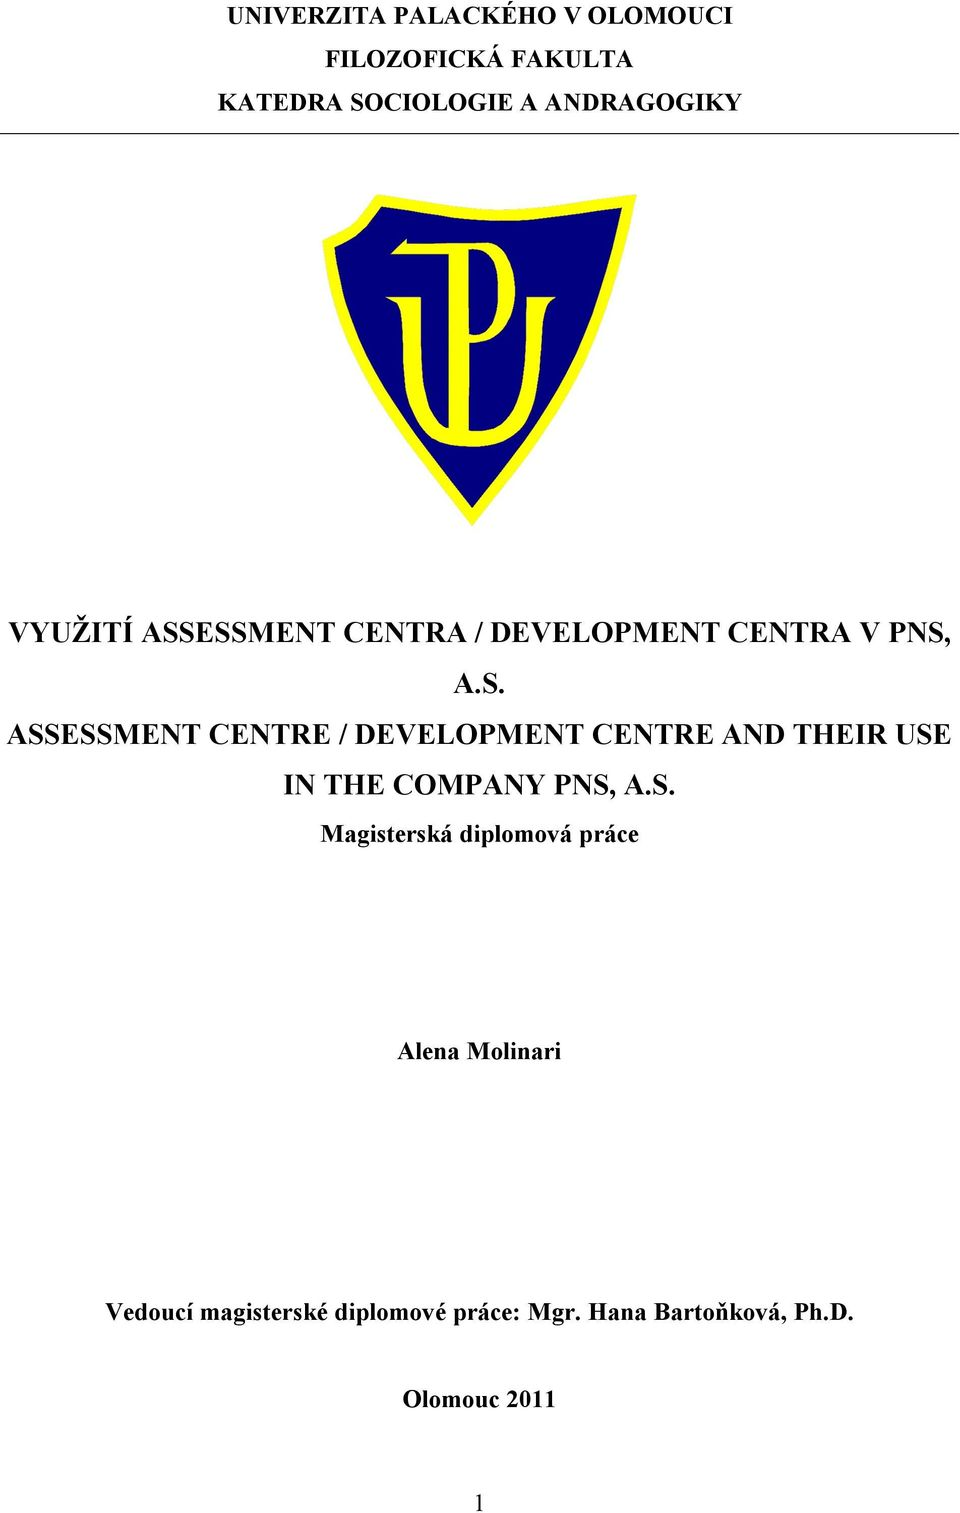 ESSMENT CENTRA / DEVELOPMENT CENTRA V PNS, A.S. ASSESSMENT CENTRE / DEVELOPMENT CENTRE AND THEIR USE IN THE COMPANY PNS, A.